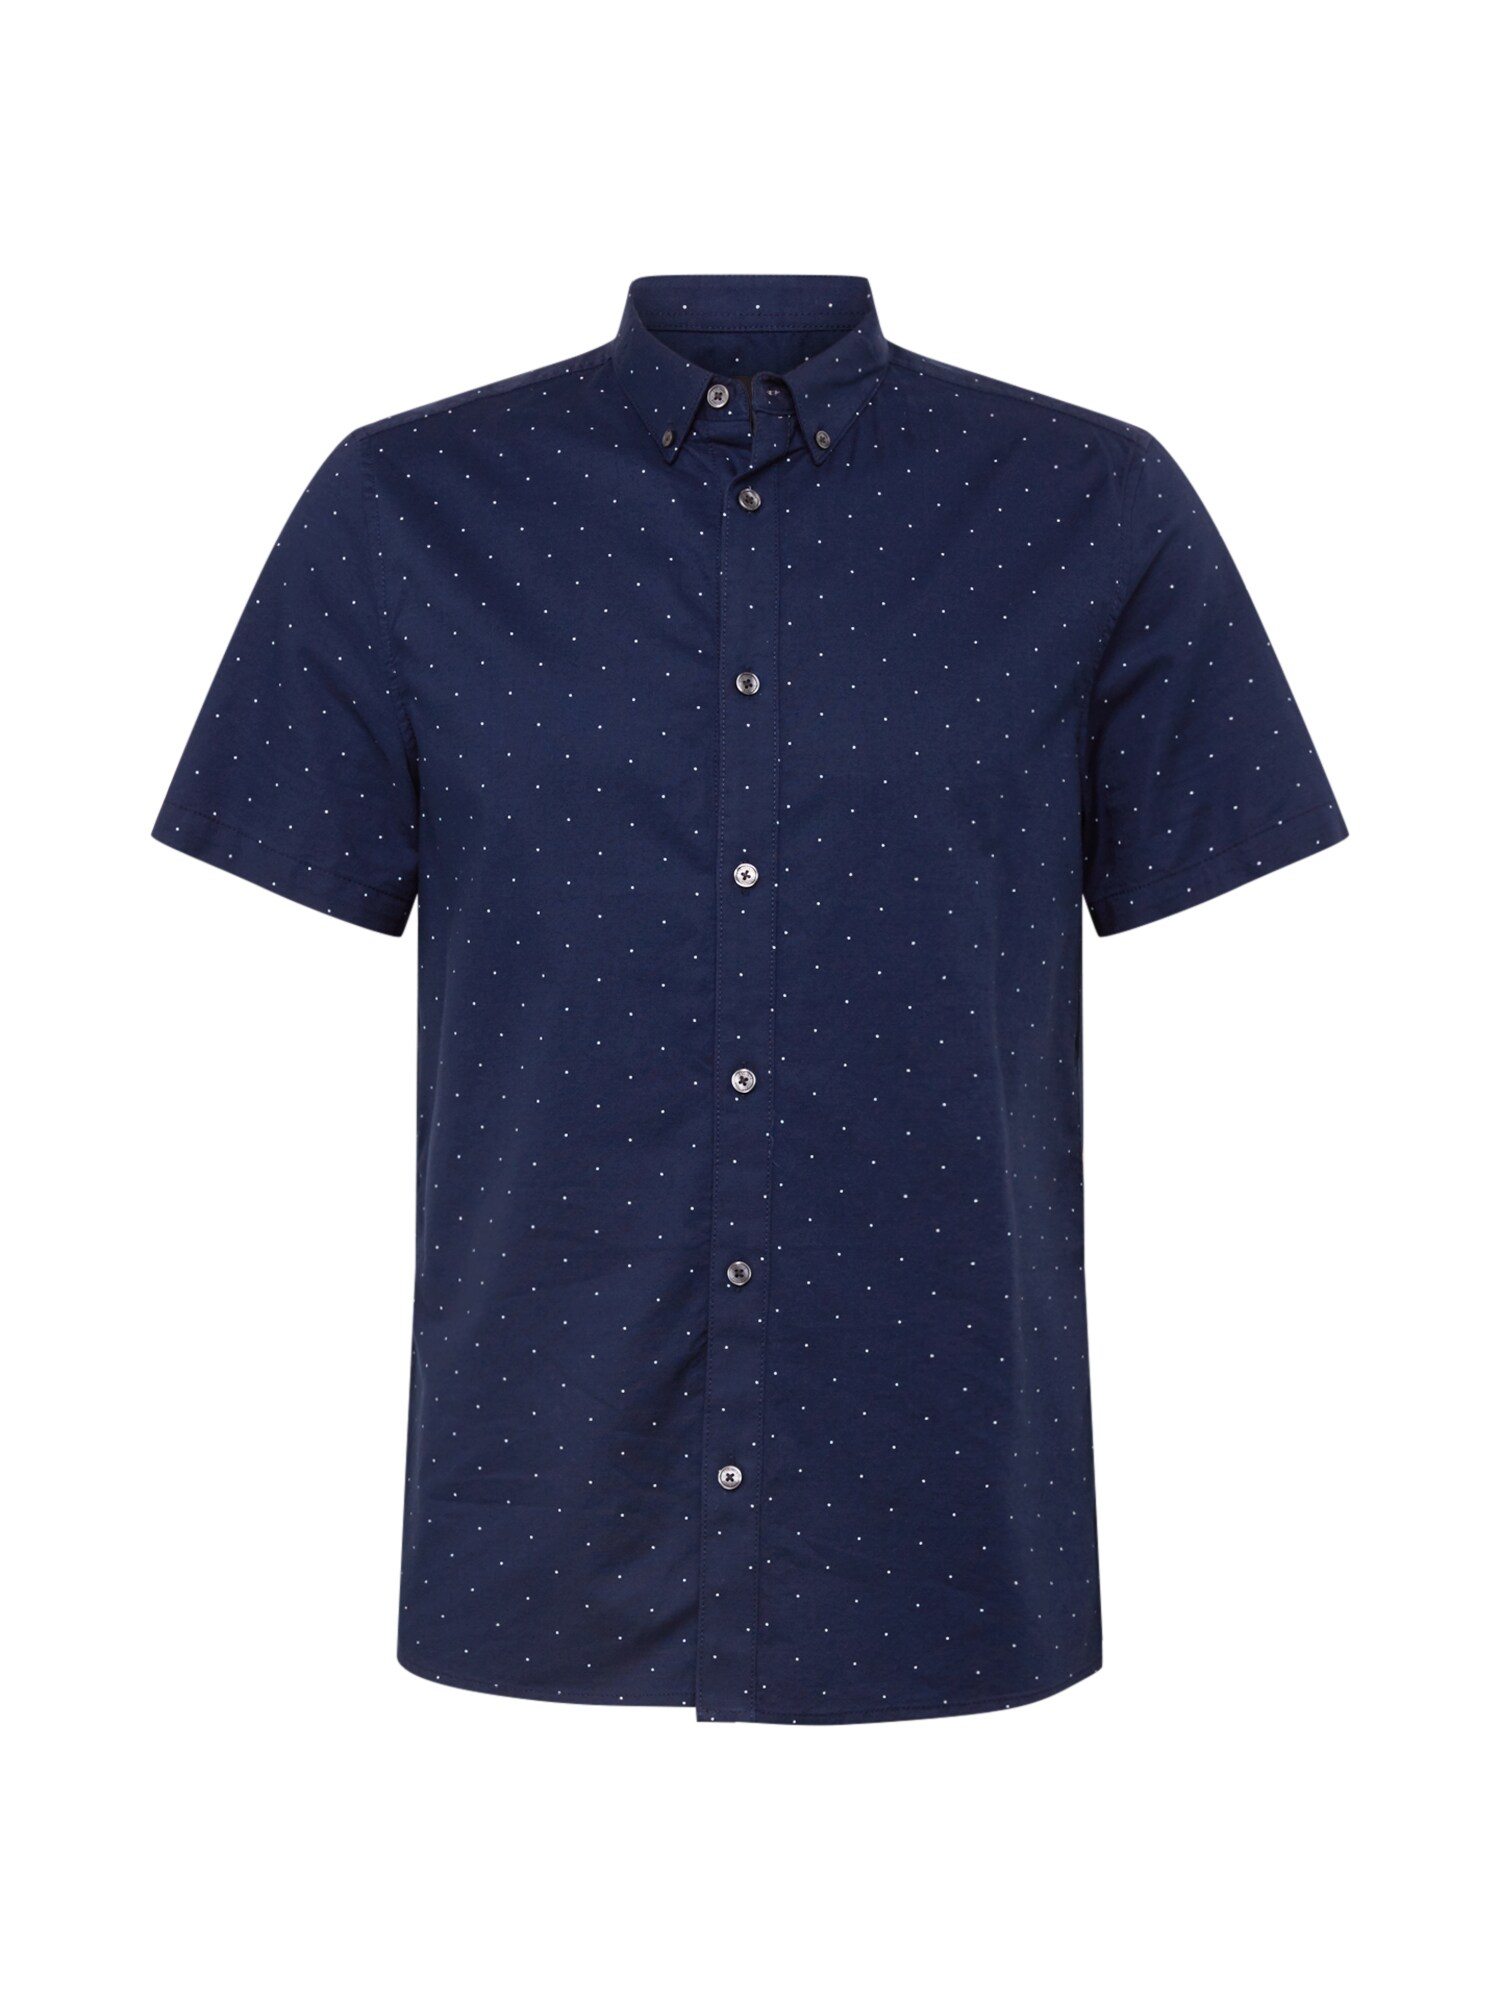 BURTON MENSWEAR LONDON Košile NAVY FINE DOT OXFORD SHIRT námořnická modř Burton Menswear London